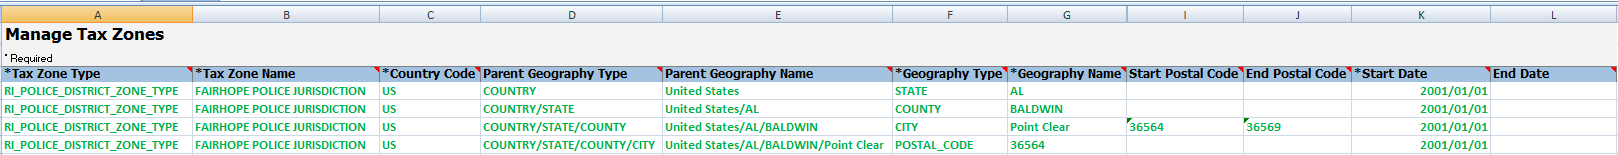 Select all sequences oracle